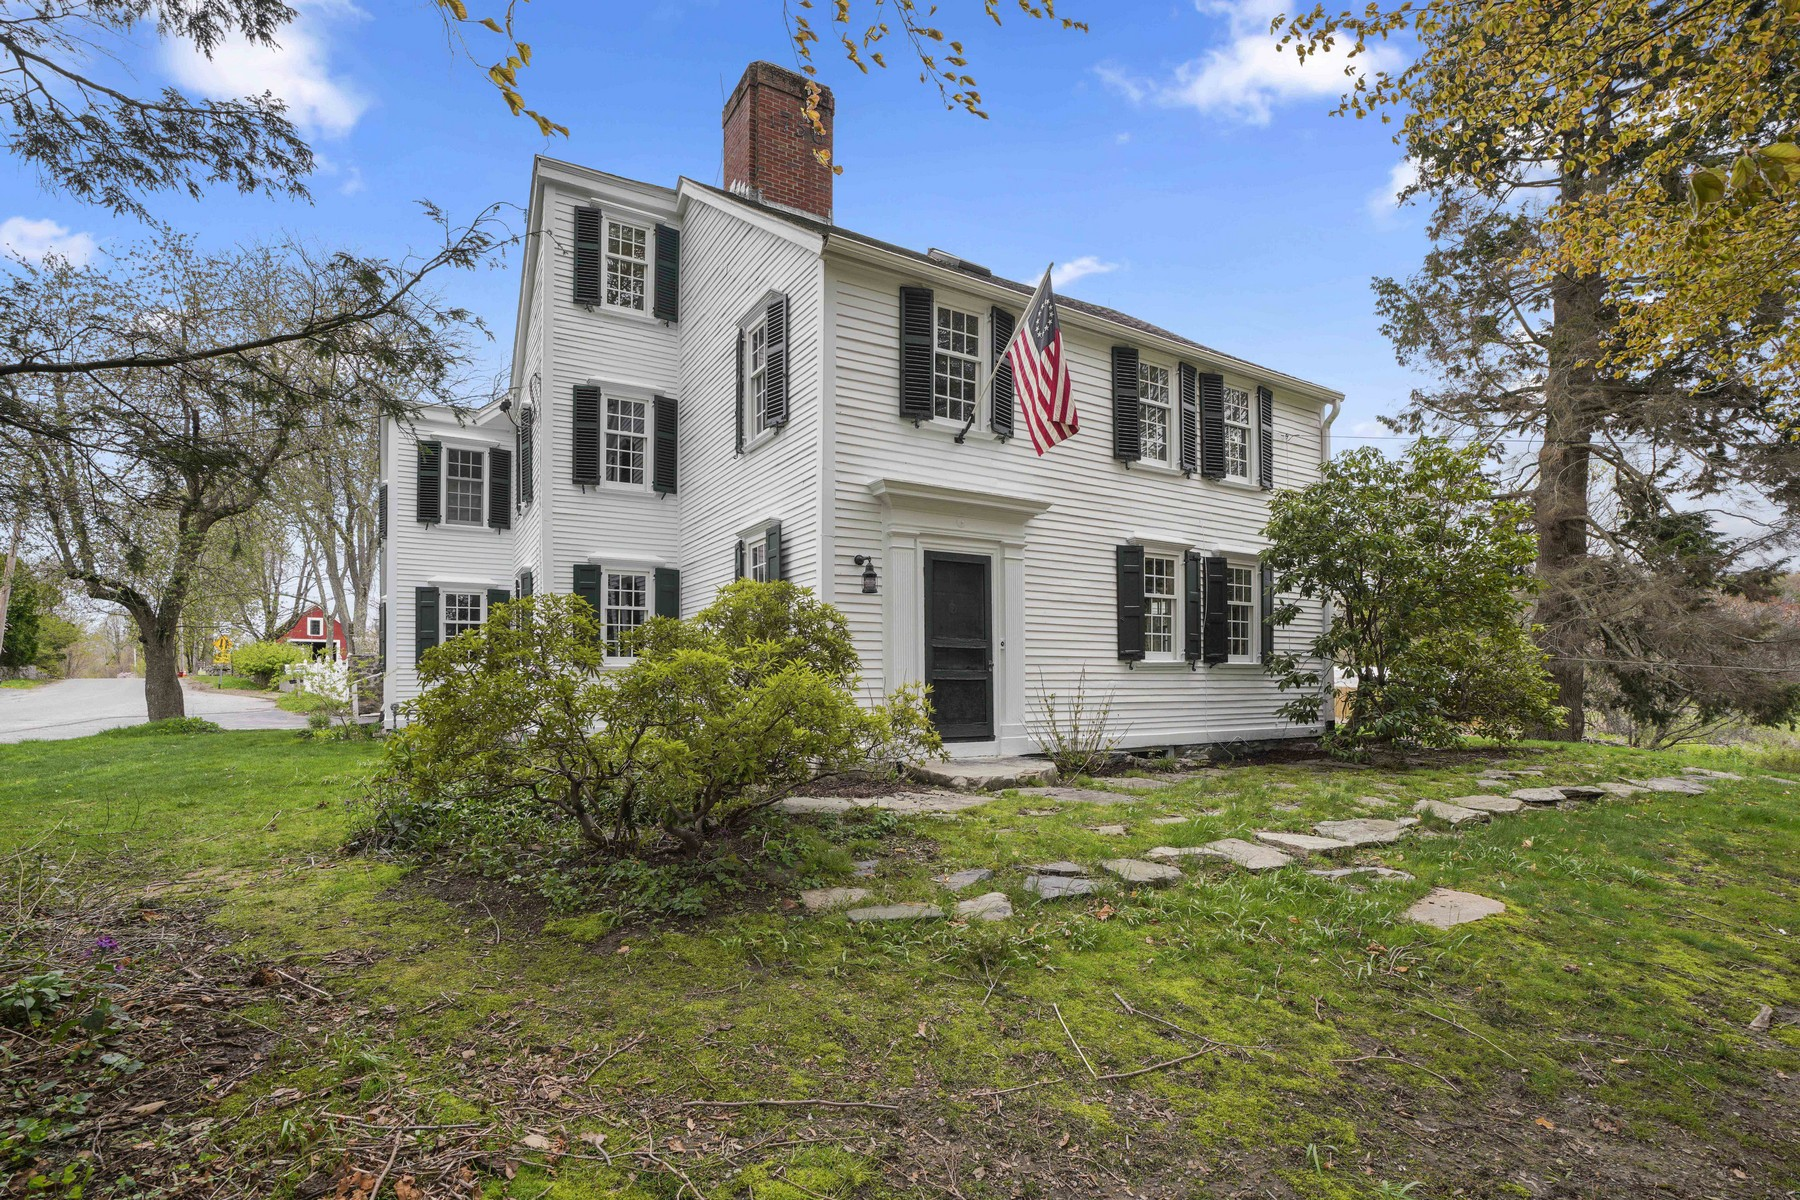 Single Family Homes for Active at Handsome 18th Century Home 1 Chestnut Hill Road Southborough, Massachusetts 01772 United States